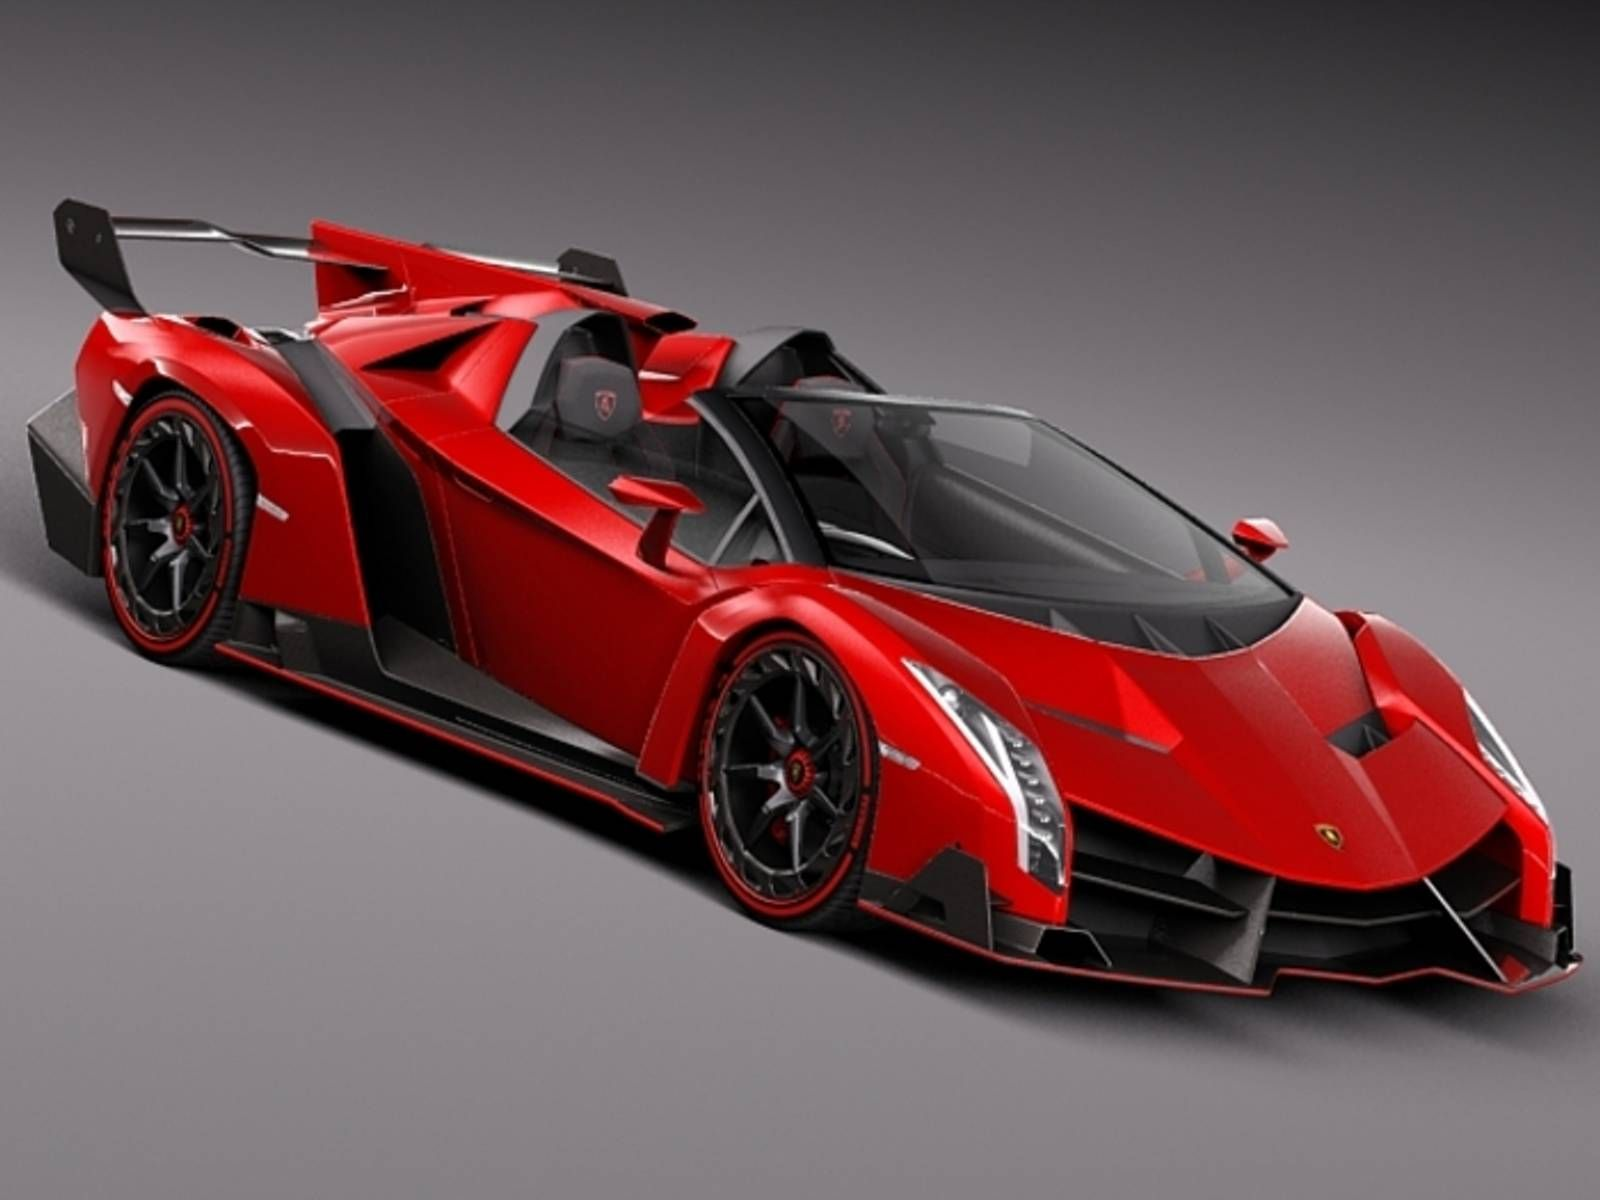 black veneno hd wallpapers red and black lamborghini veneno 1600 x 1200 96 kb jpeg - Lamborghini Veneno Roadster Wallpaper Pink